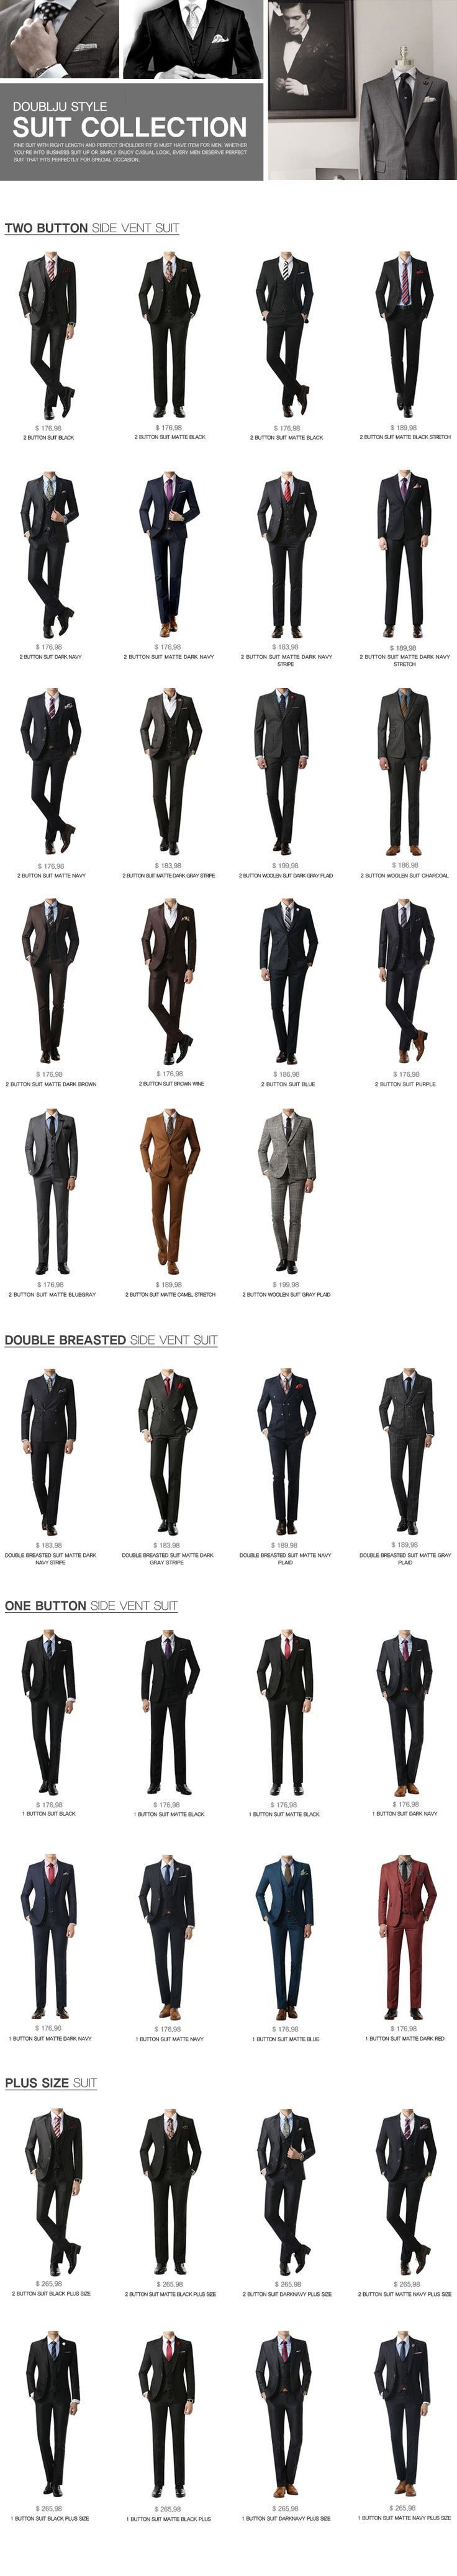 Suits - MEN Doublju. #doublju | Raddest Men's Fashion Looks On The Internet: http://www.raddestlooks.net